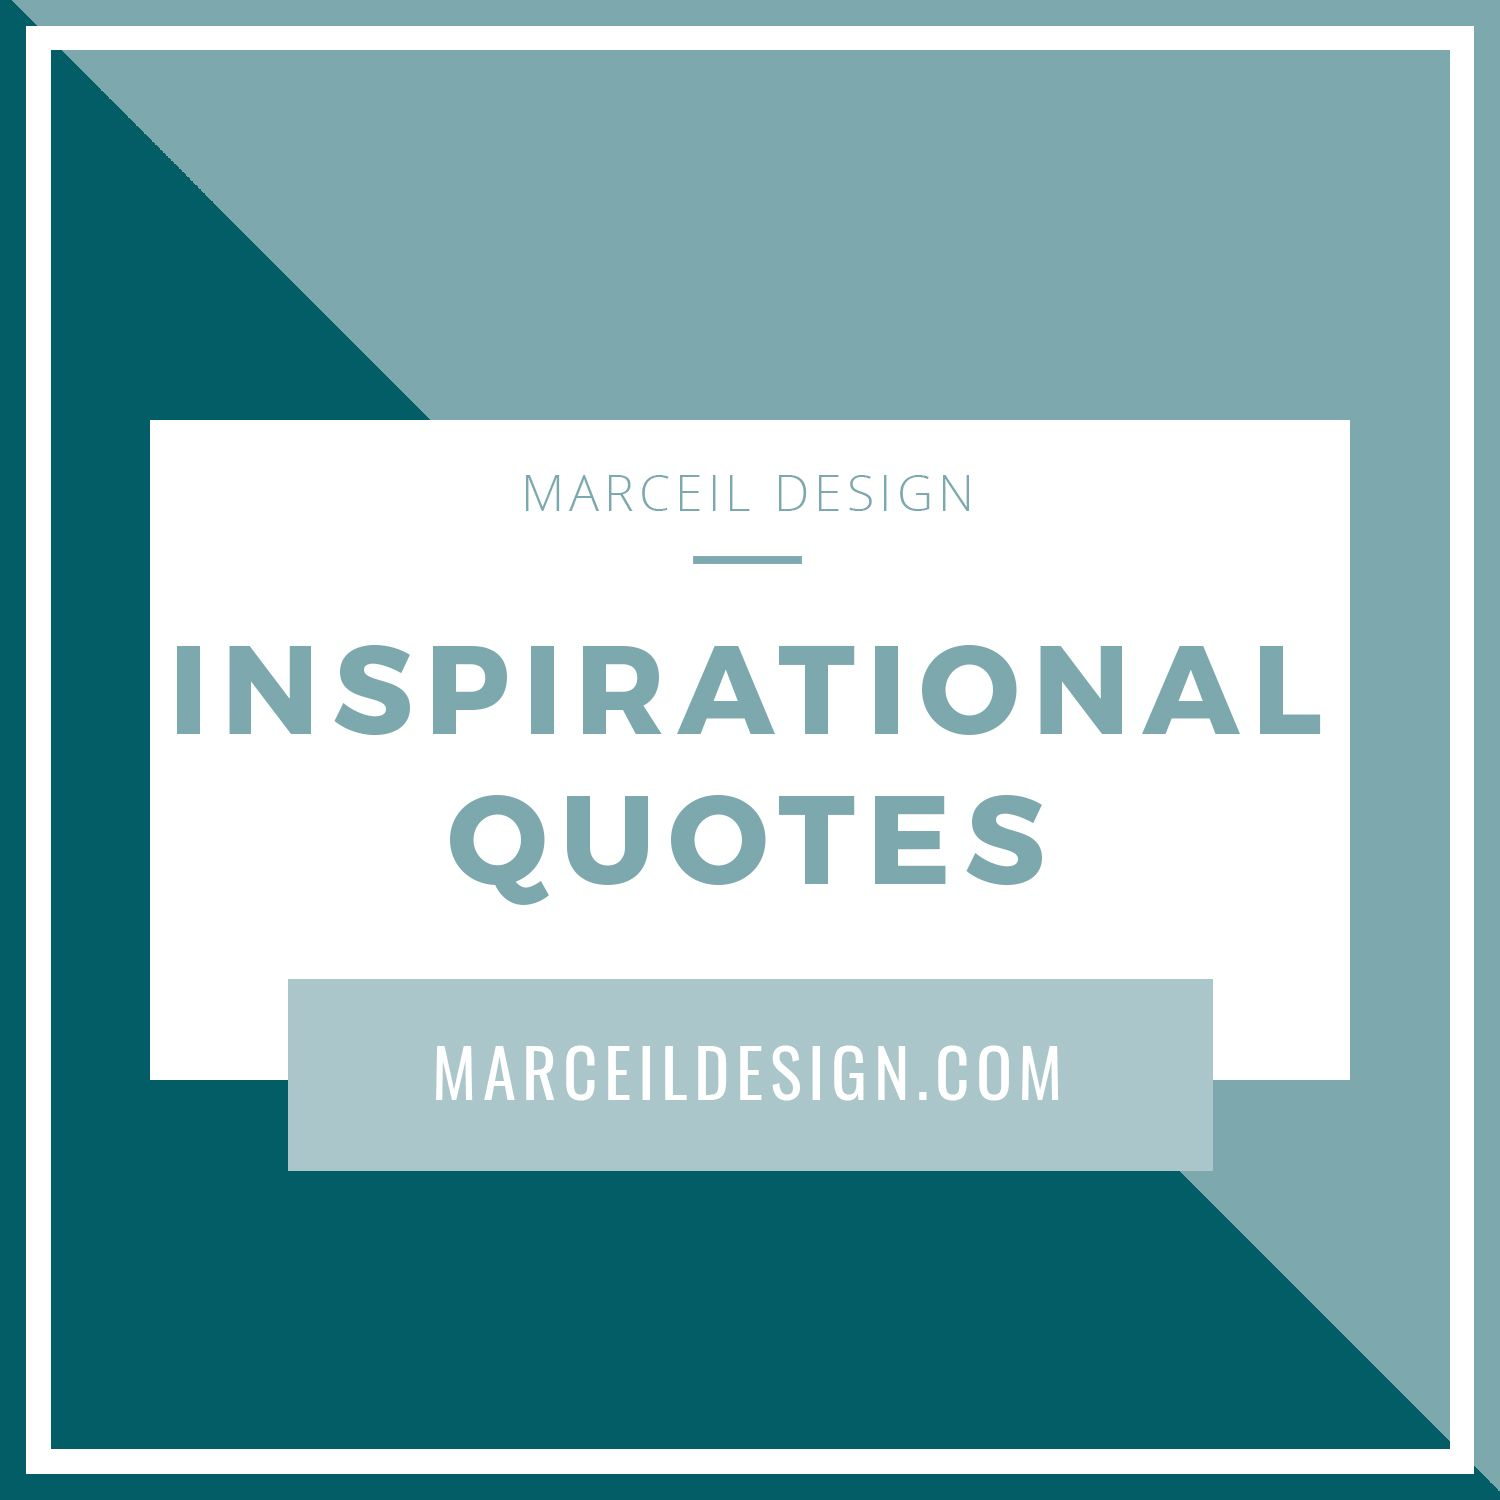 Pin by Marceil Design on Inspirational Business Quotes | Pinterest ...